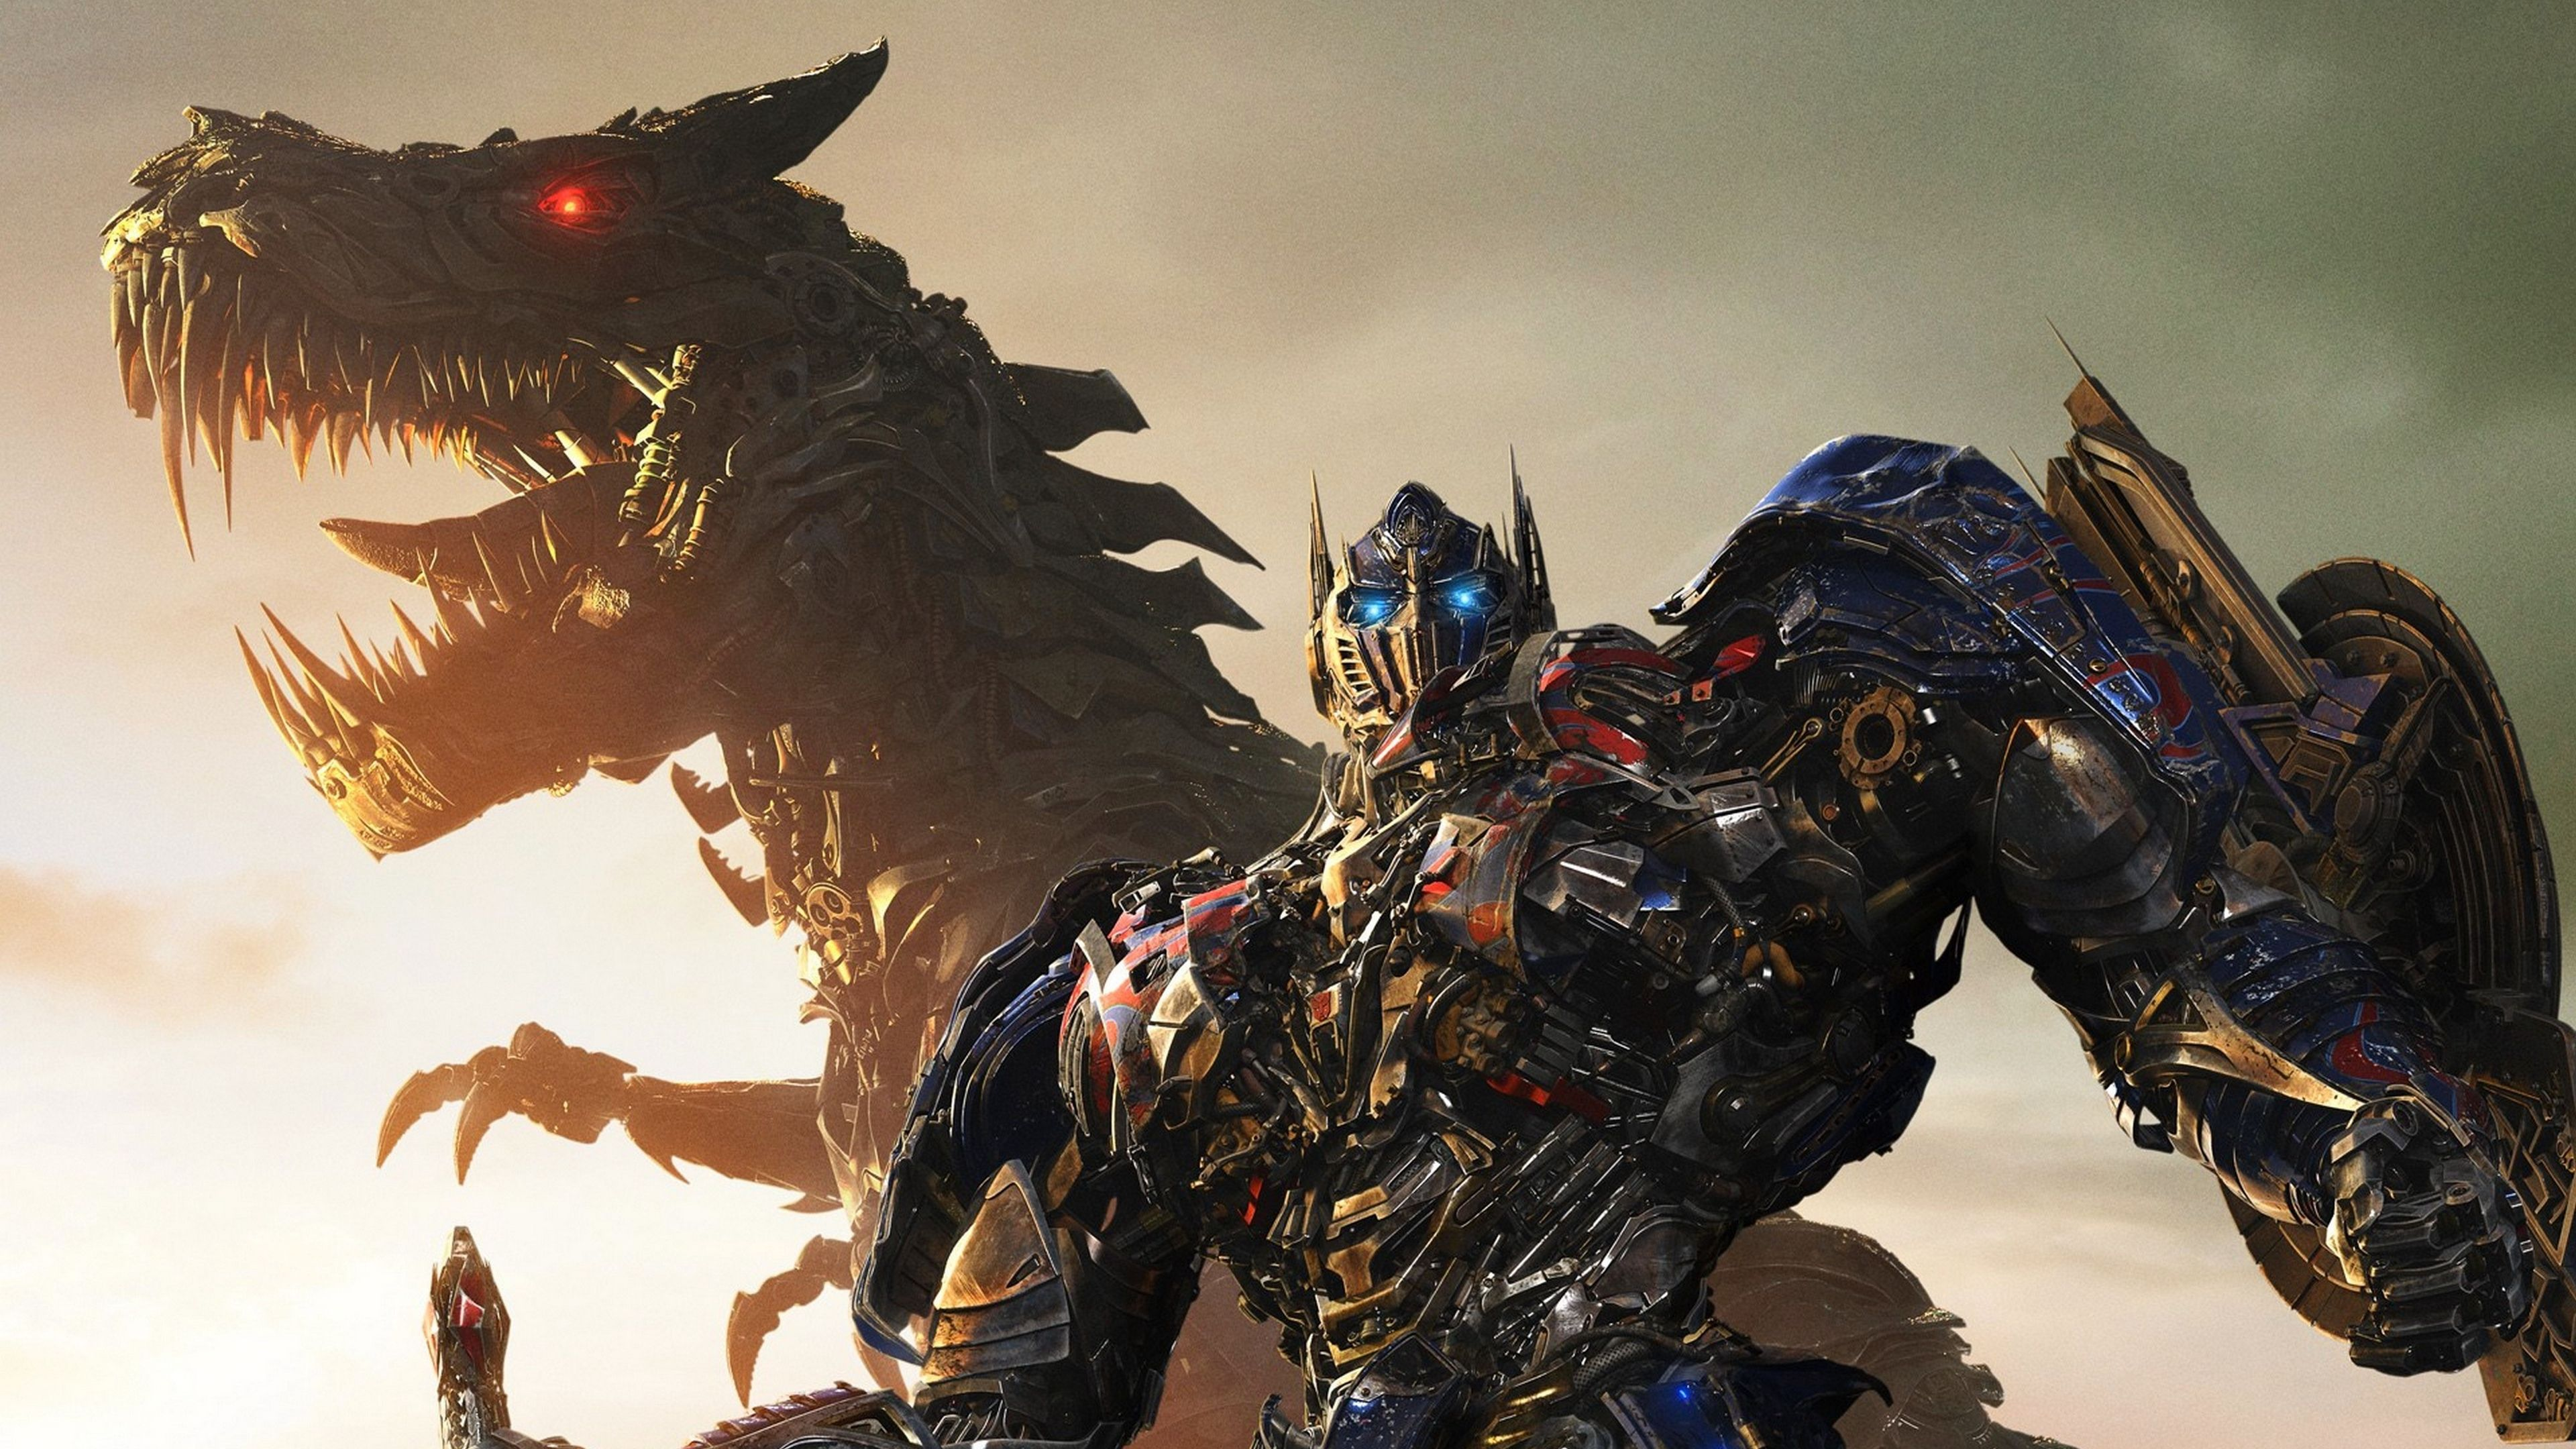 3840x2160 Download wallpaper 3840x2160 transformers age of extinction, optimus ...